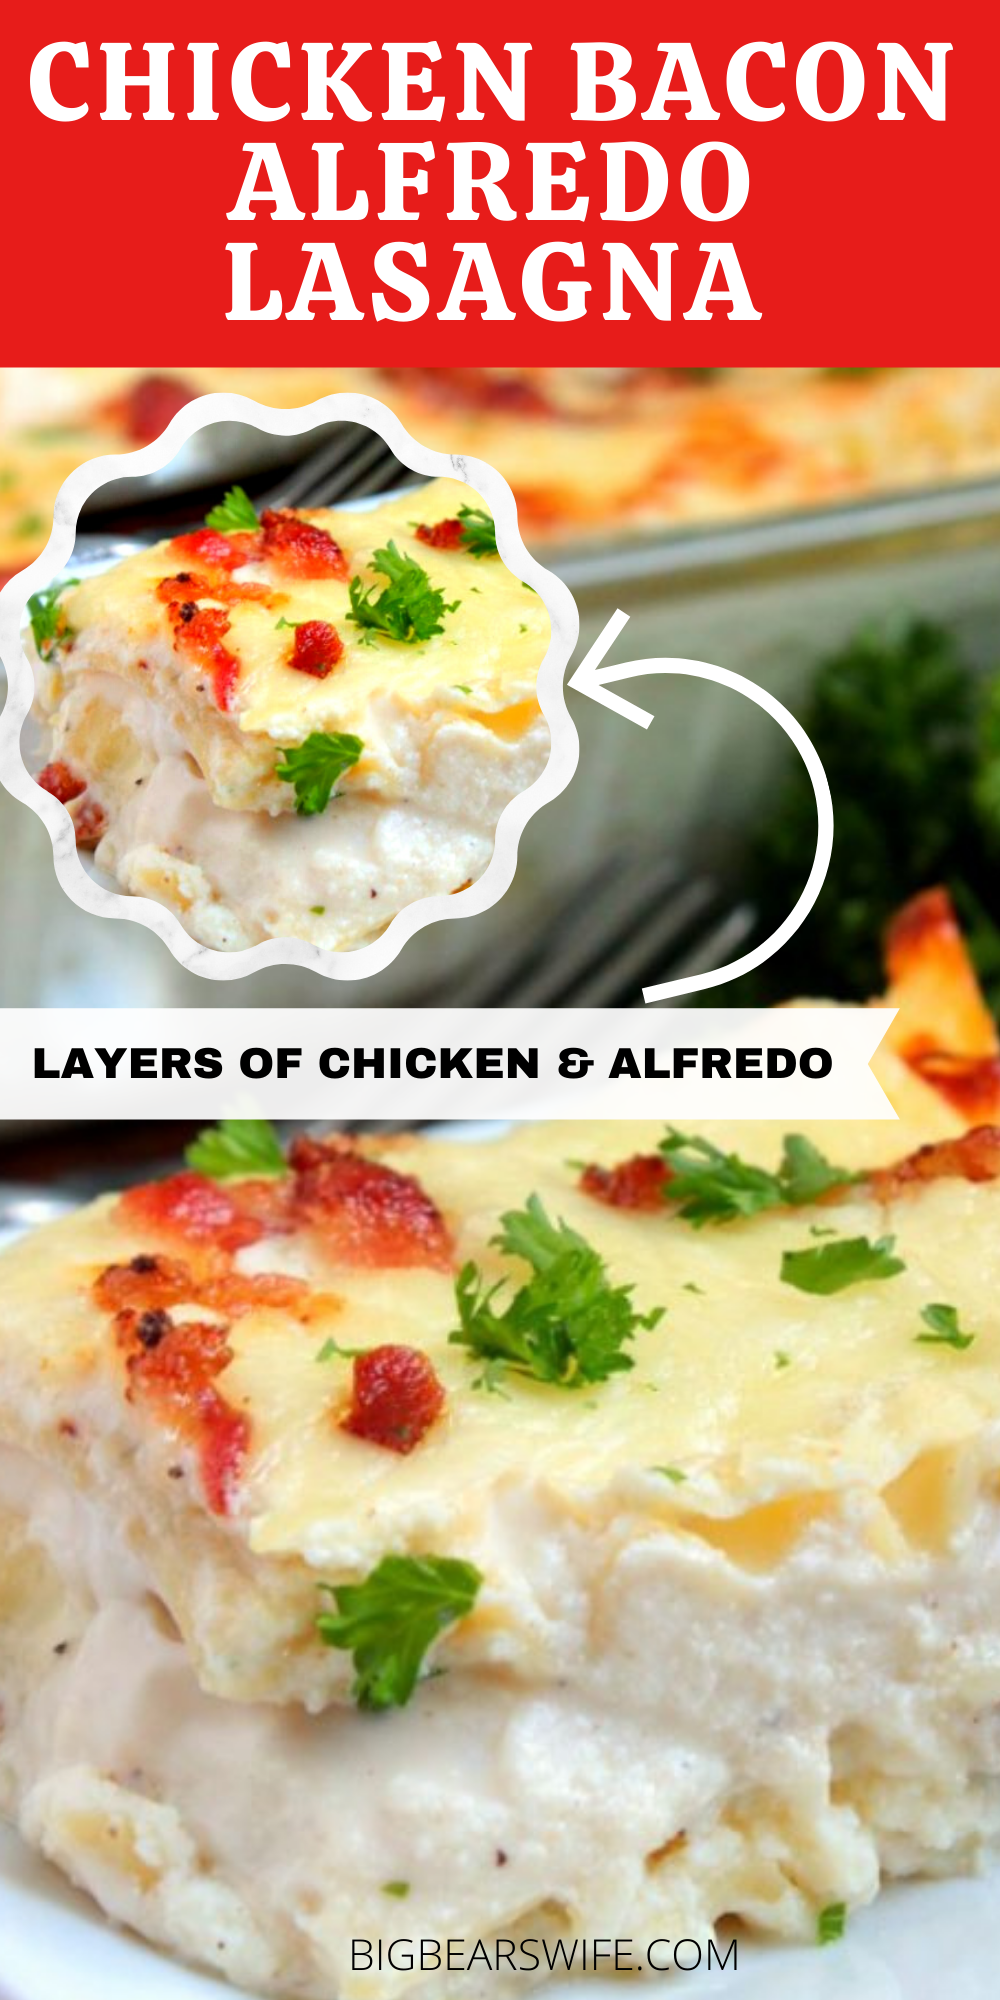 A new take on homemade Lasagna! Chicken Bacon Alfredo Lasagna is layered with seasoned chicken, bacon, Alfredo, Mozzarella cheese and lasagna noodles.